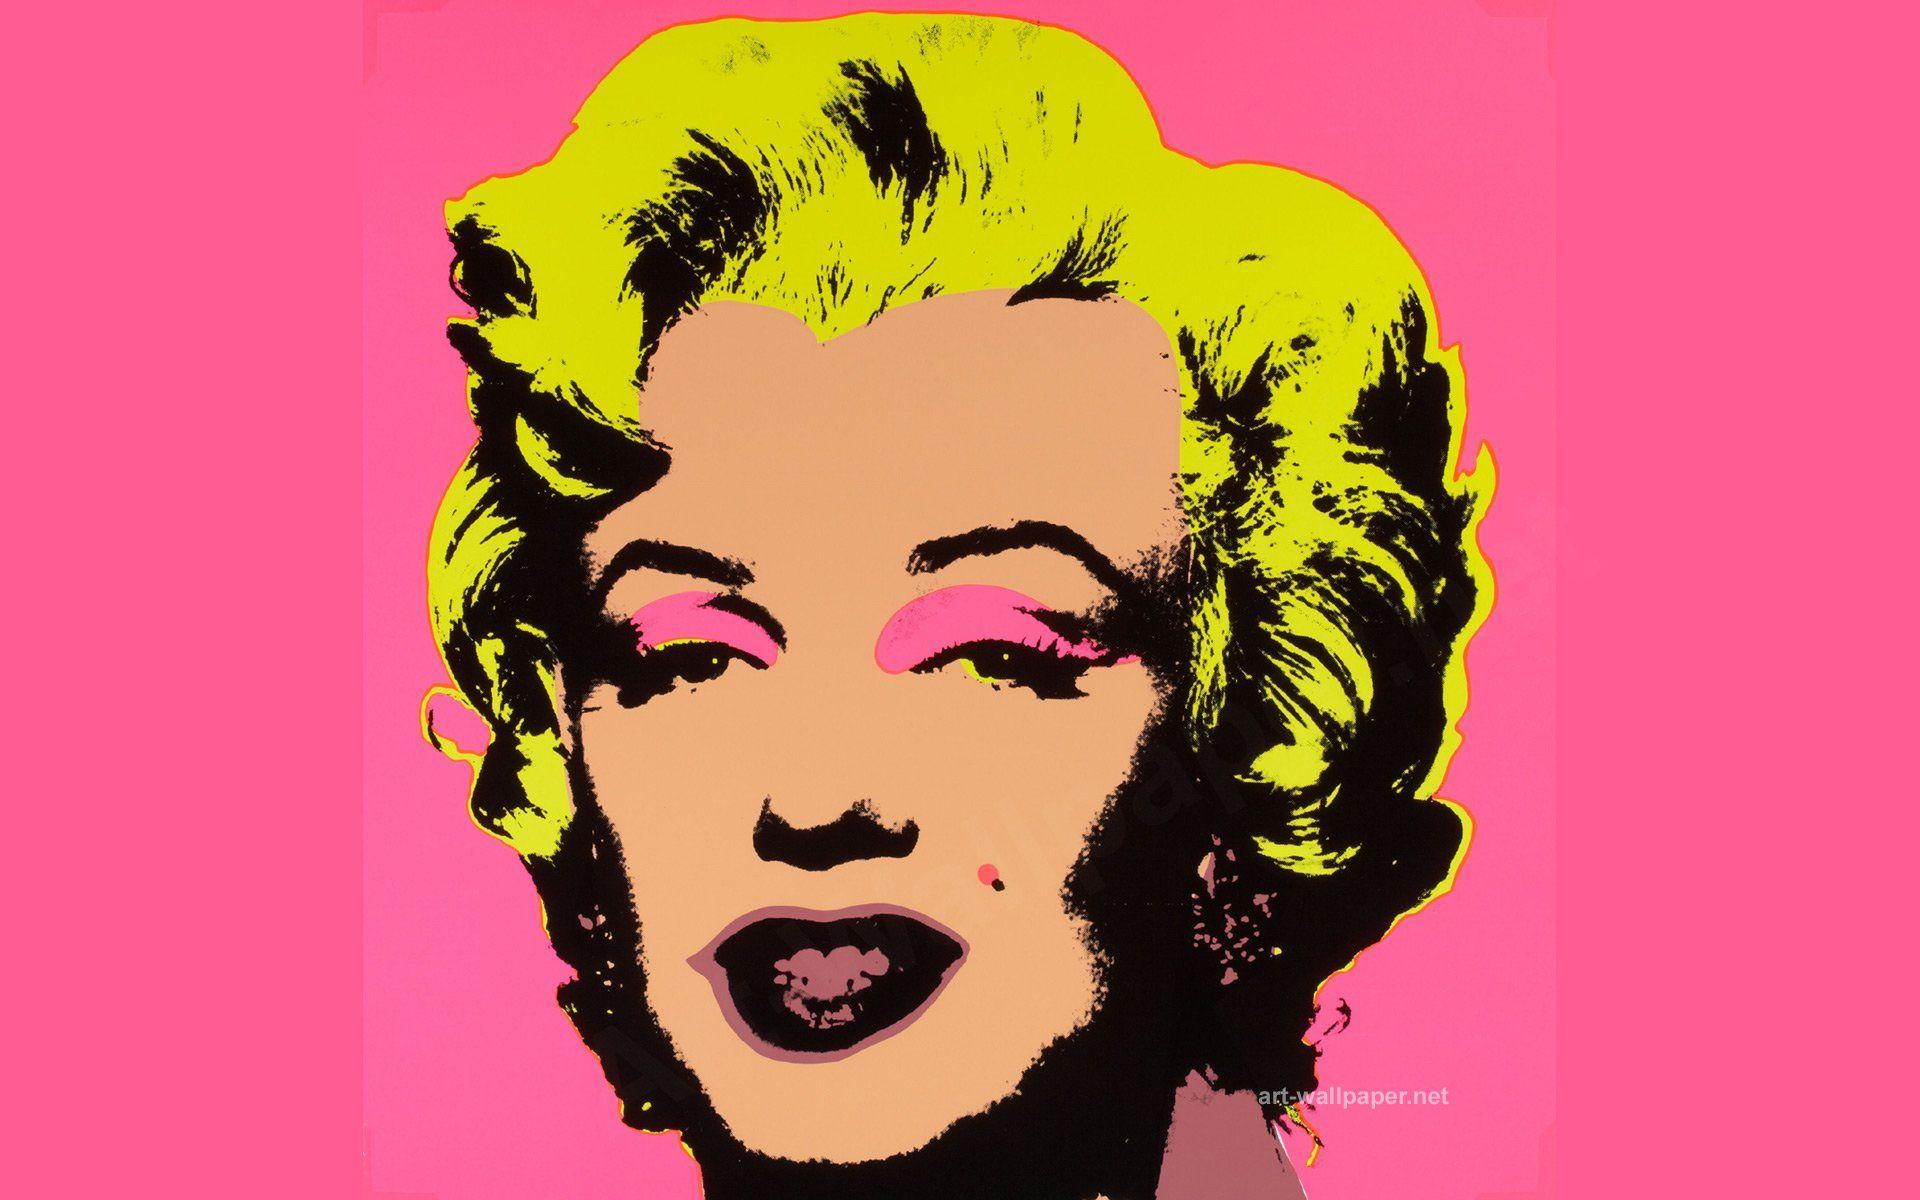 Marilyn Pop Art Andy Warhol Andy Warhol Wallpapers Wallpaper Cave